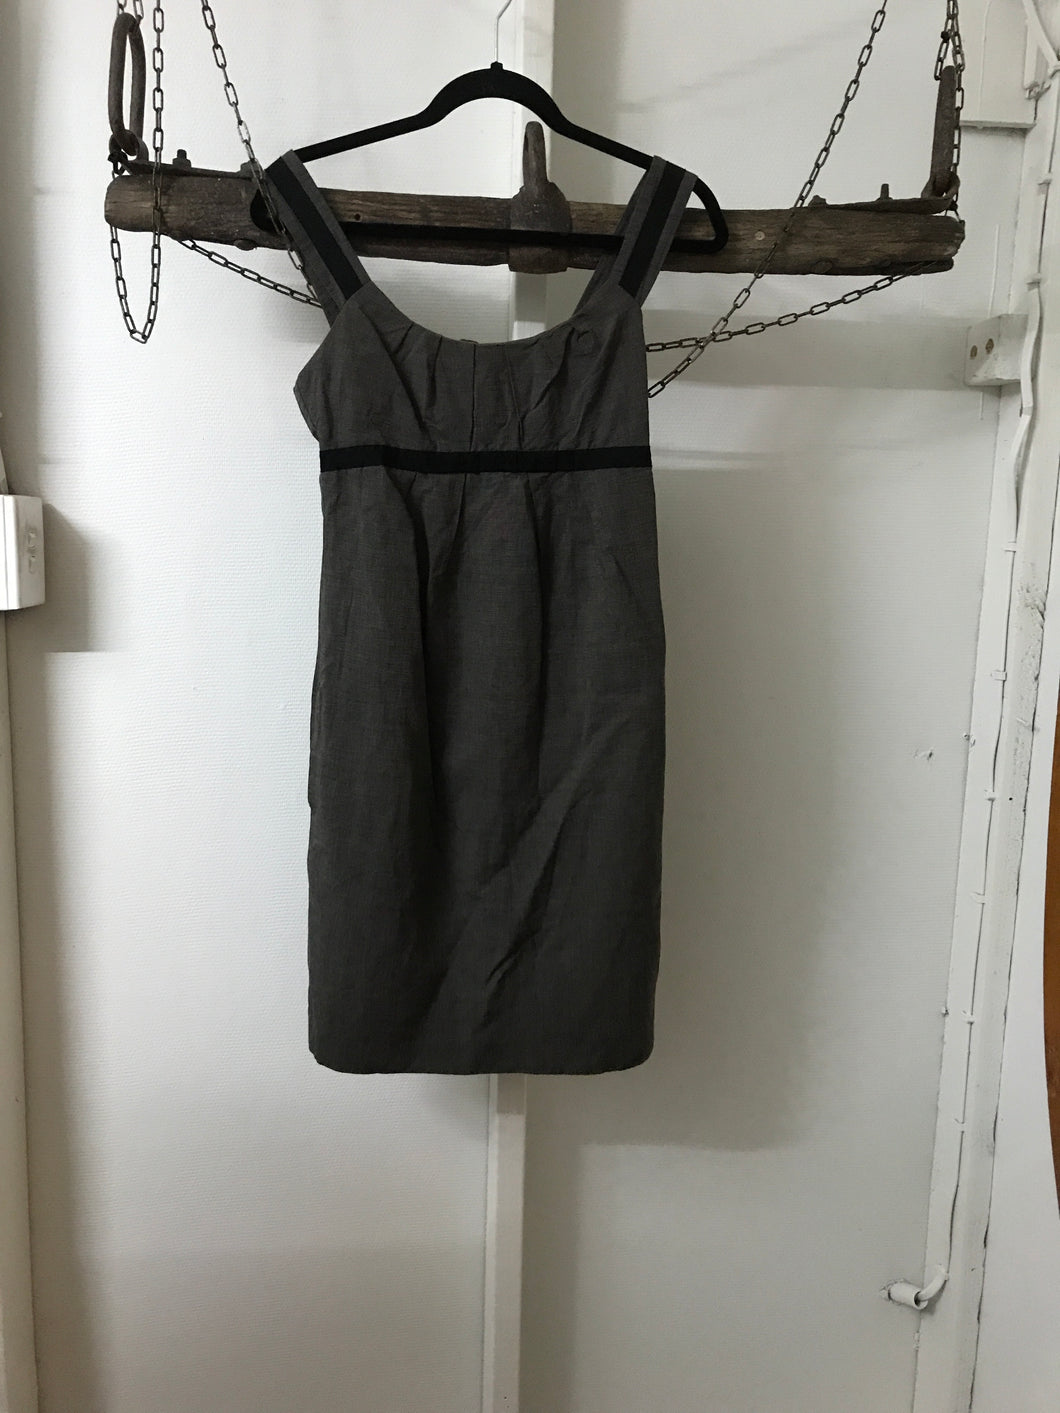 Cue Grey/Black Short Sleeve Business Dress Size 6